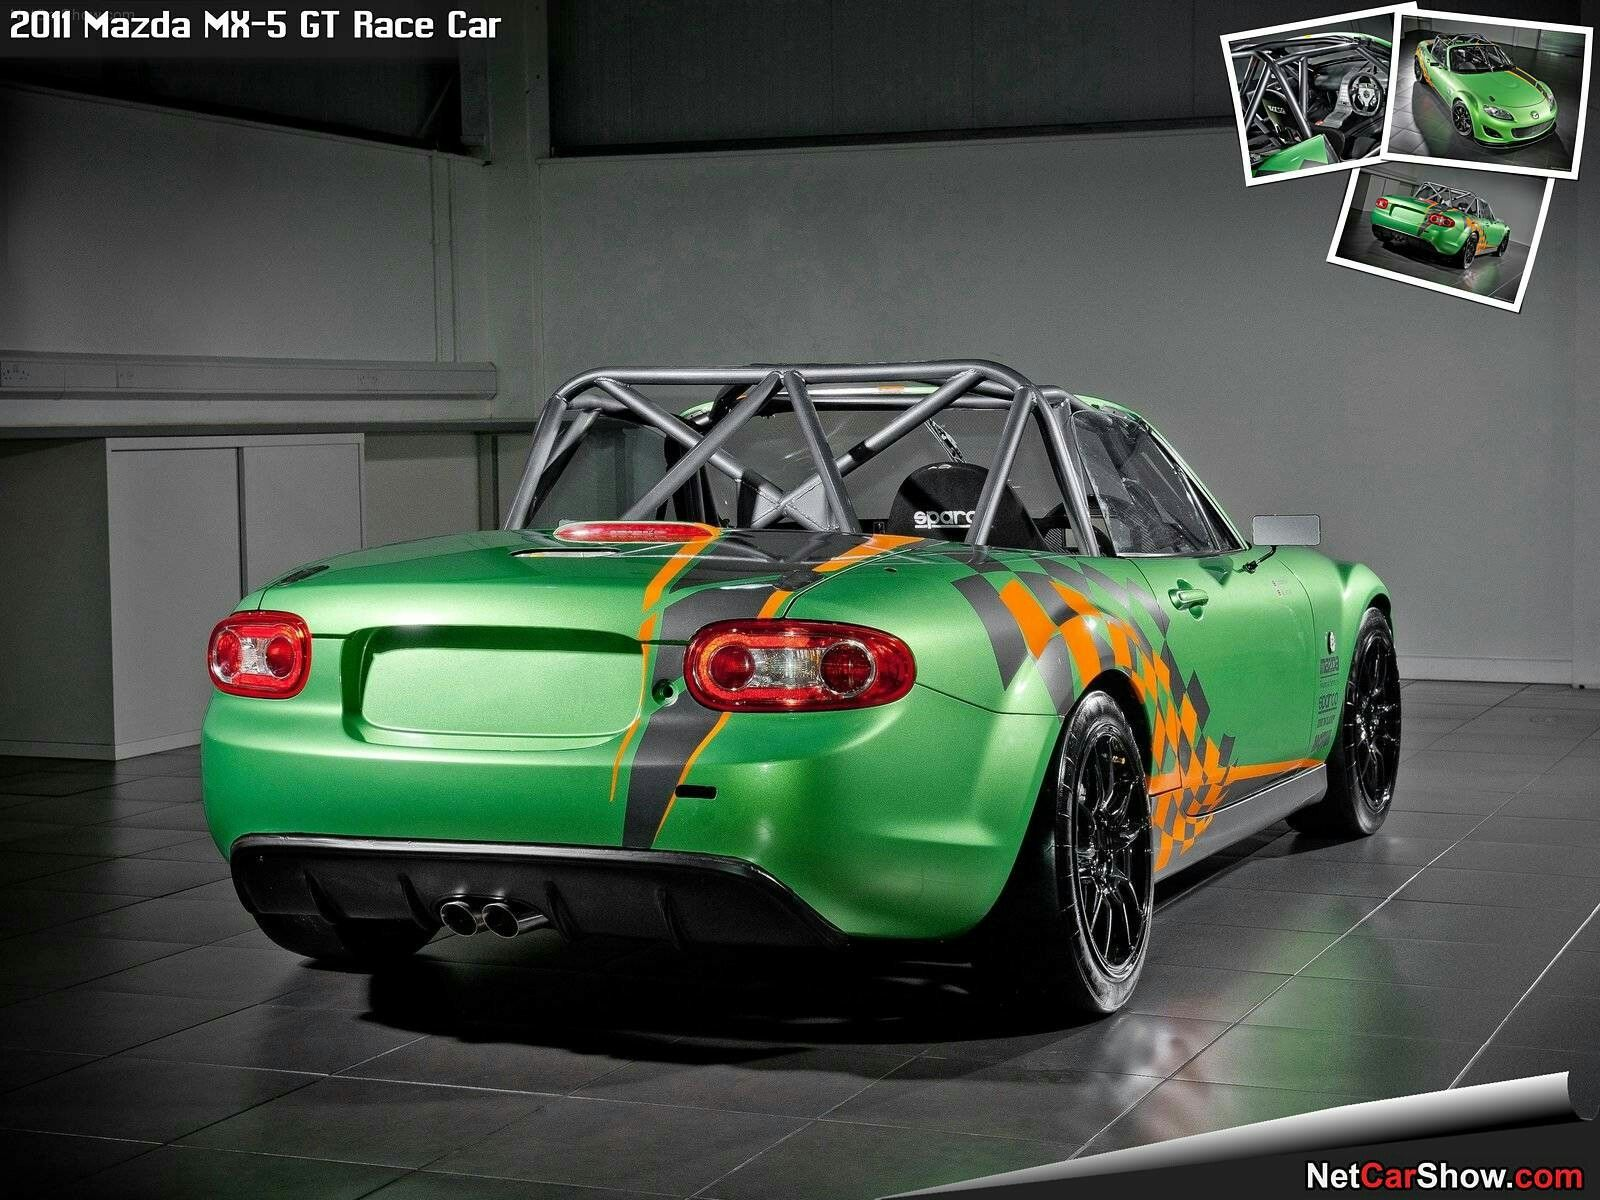 Mazda MX-5 GT Race Car (2011) - picture 3 of 5   Race Car Liveries ...